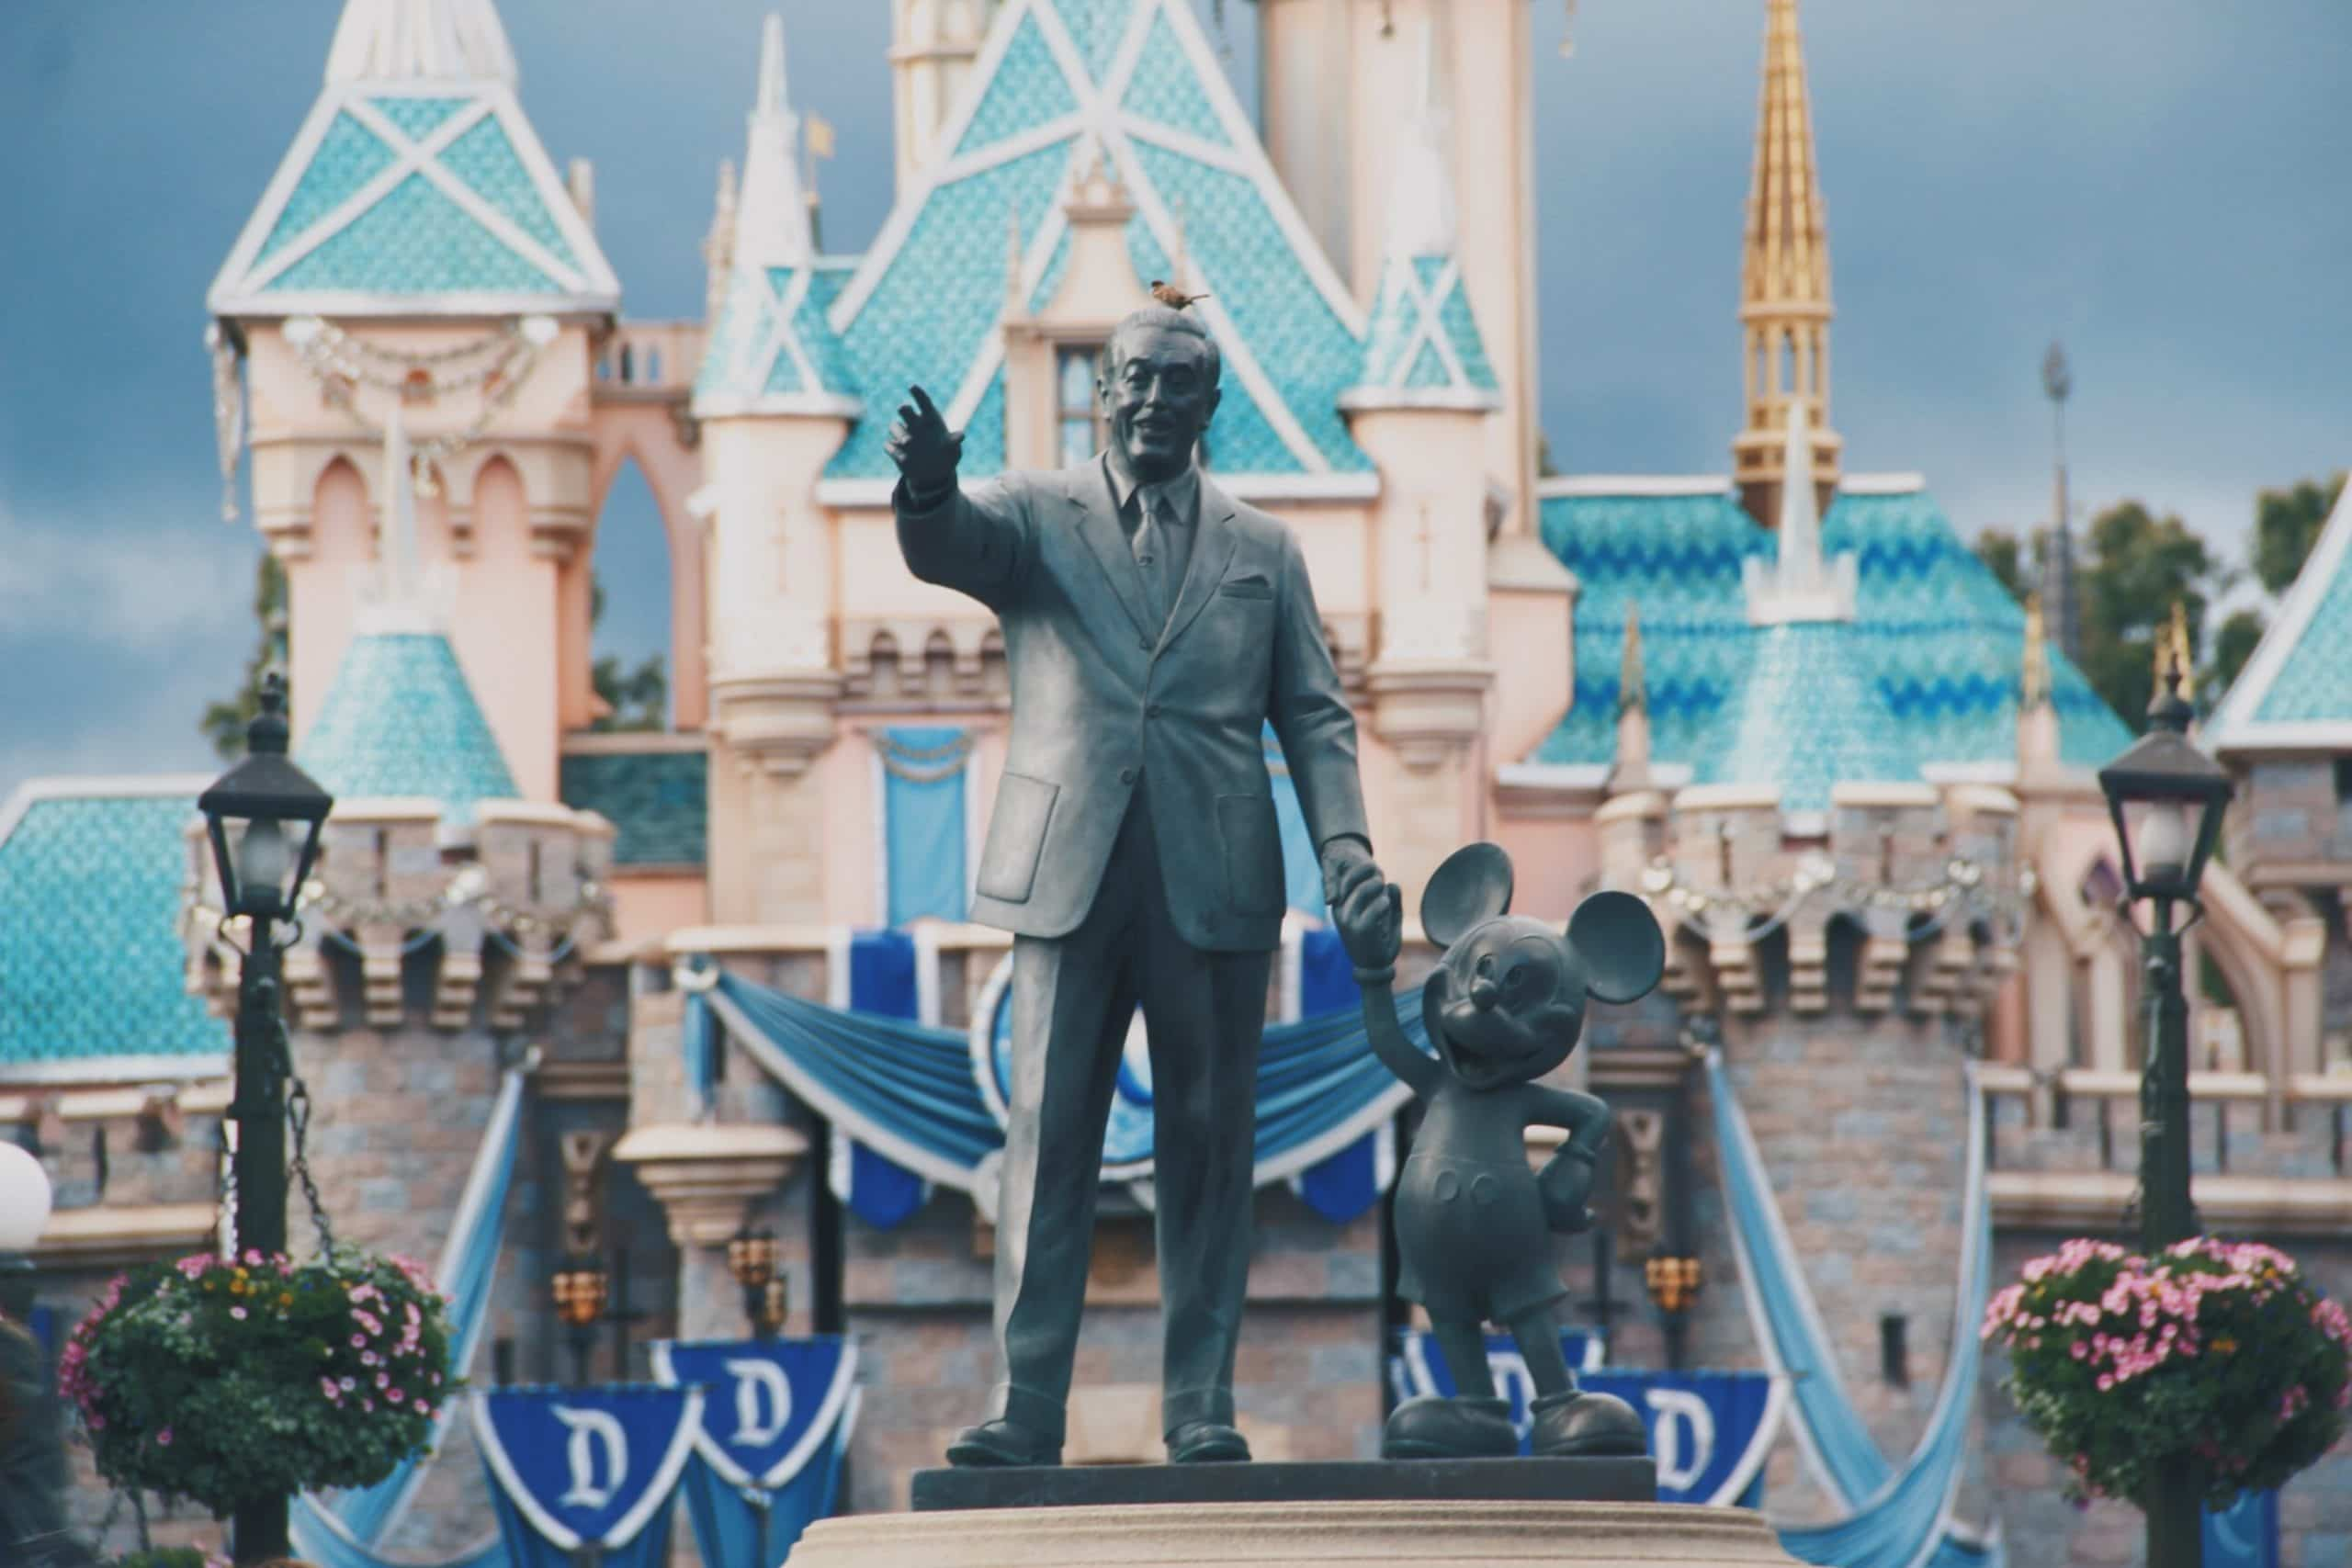 Several Disney theme parks from all over the world are opening one by one, and here is how they fare amidst the health crisis